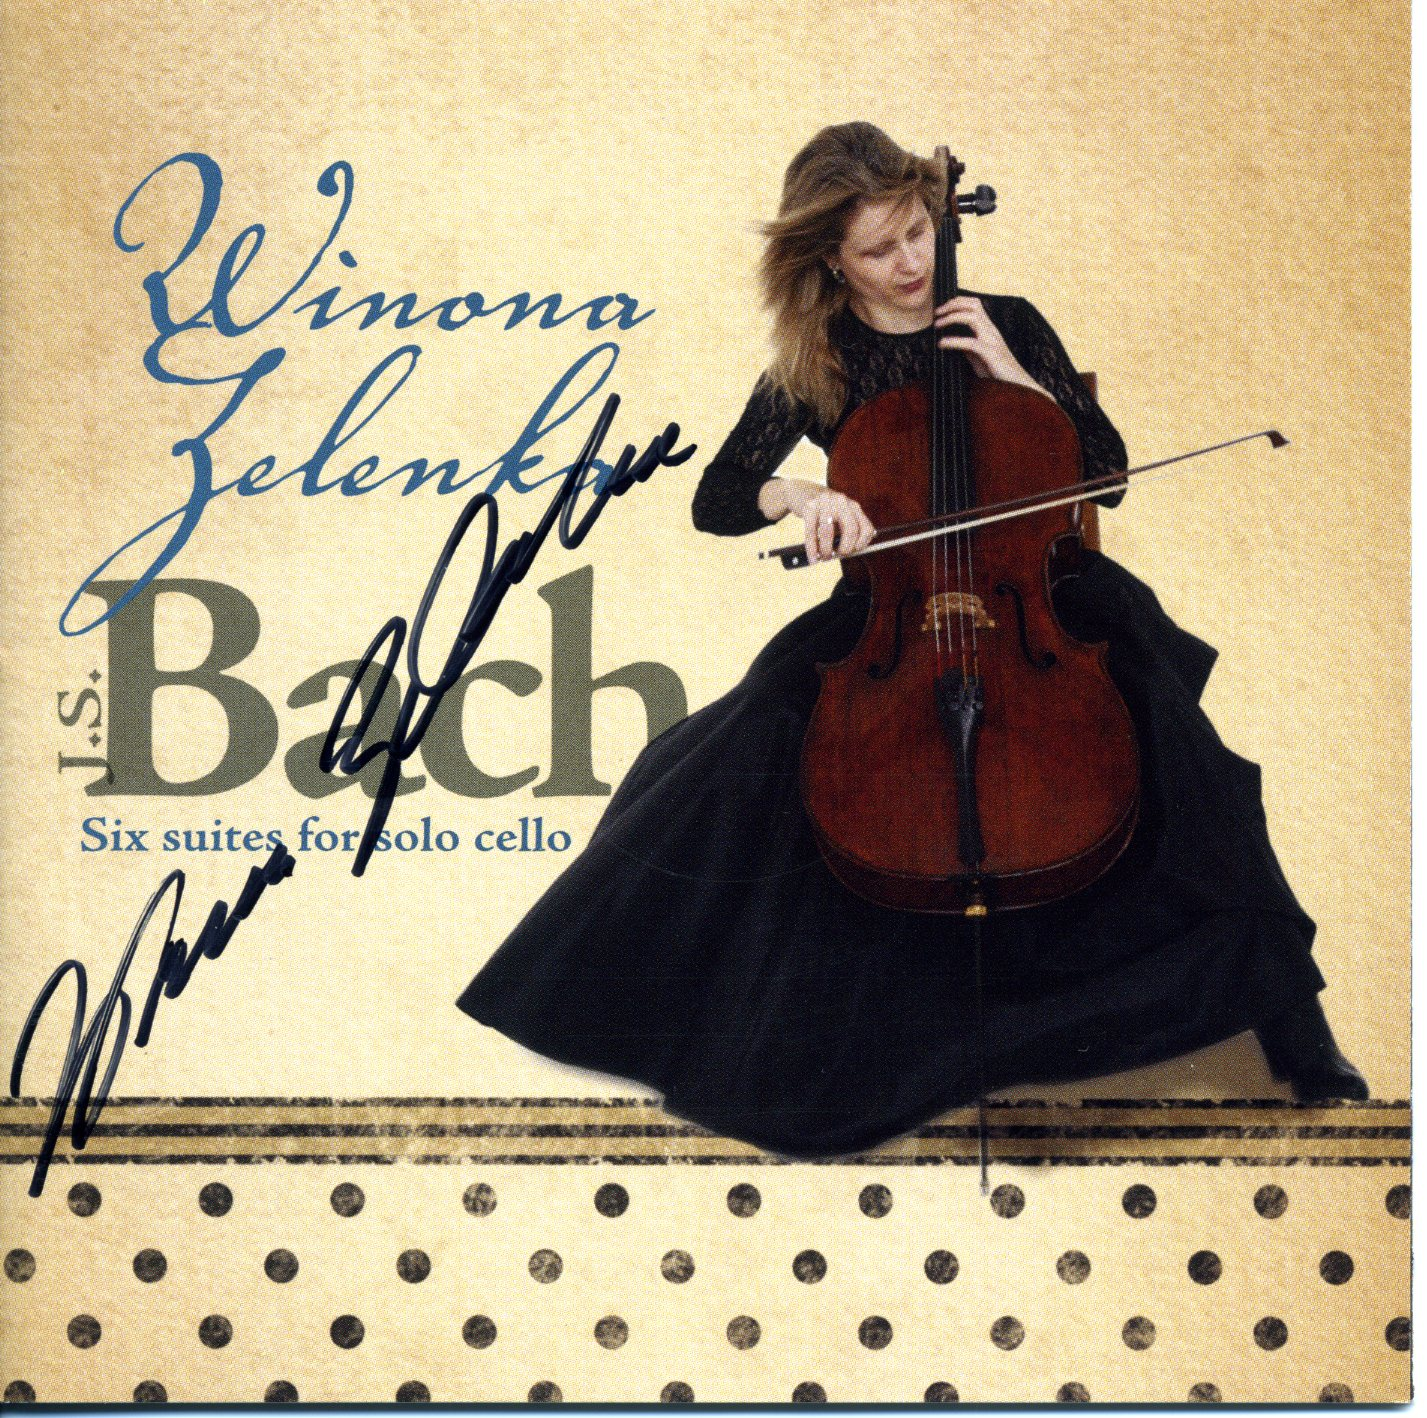 A 2-CD set of Bach's cello suites for the Marquis label, signed by Winona